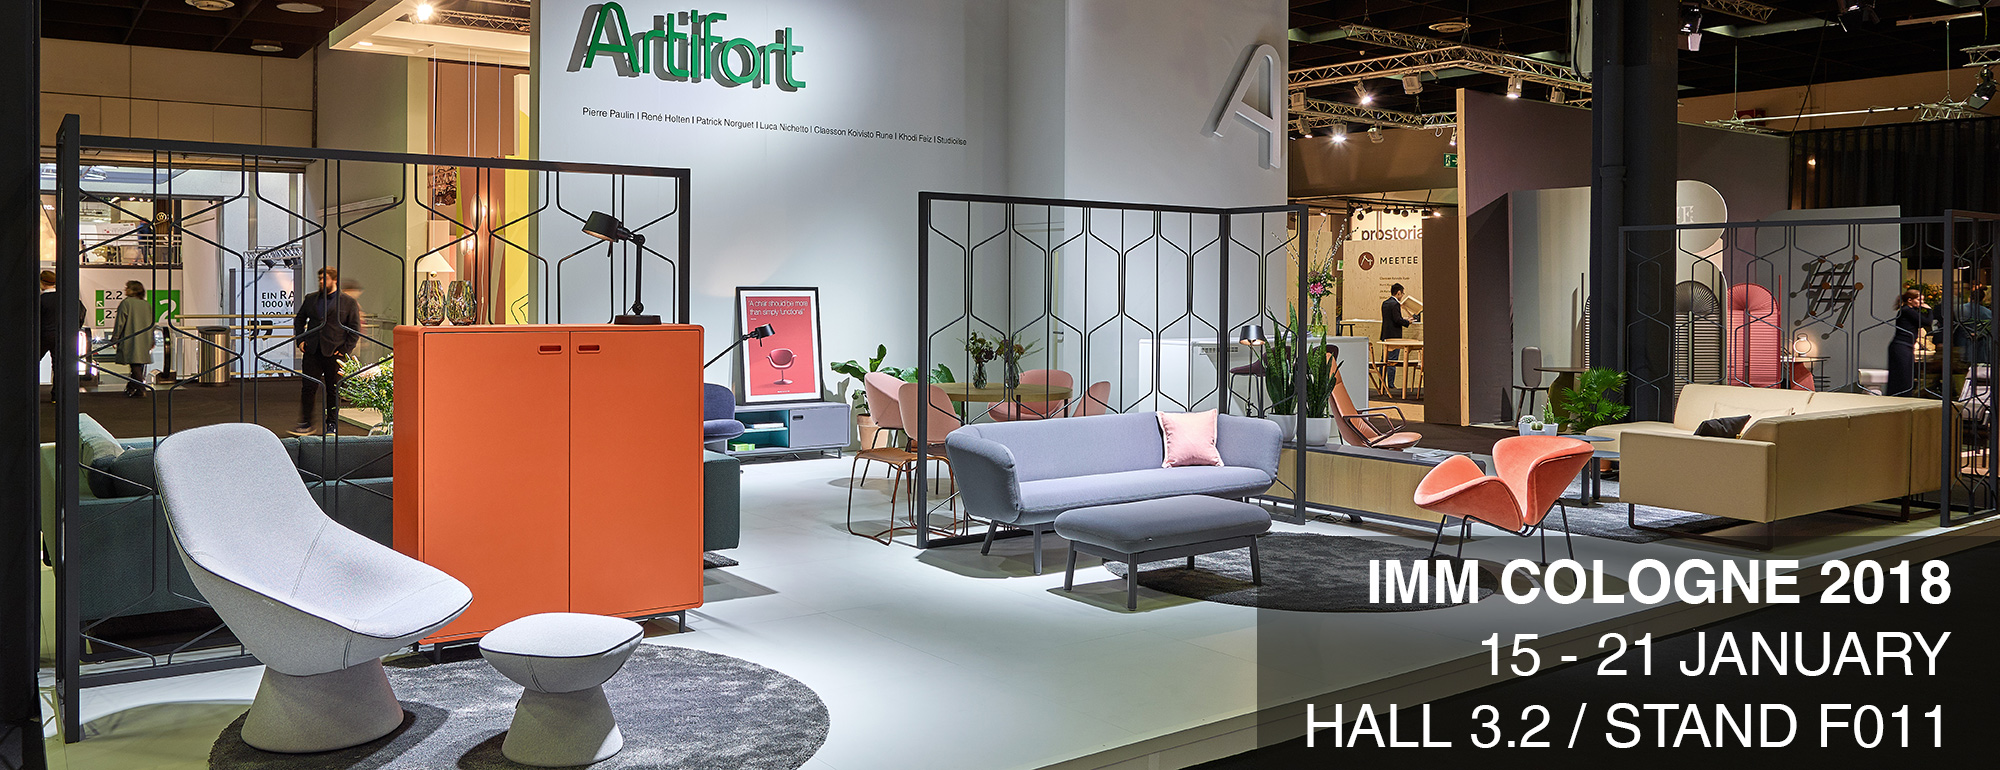 Artifort at IMM Cologne 2018. Visit us at hall 3.2, stand F011